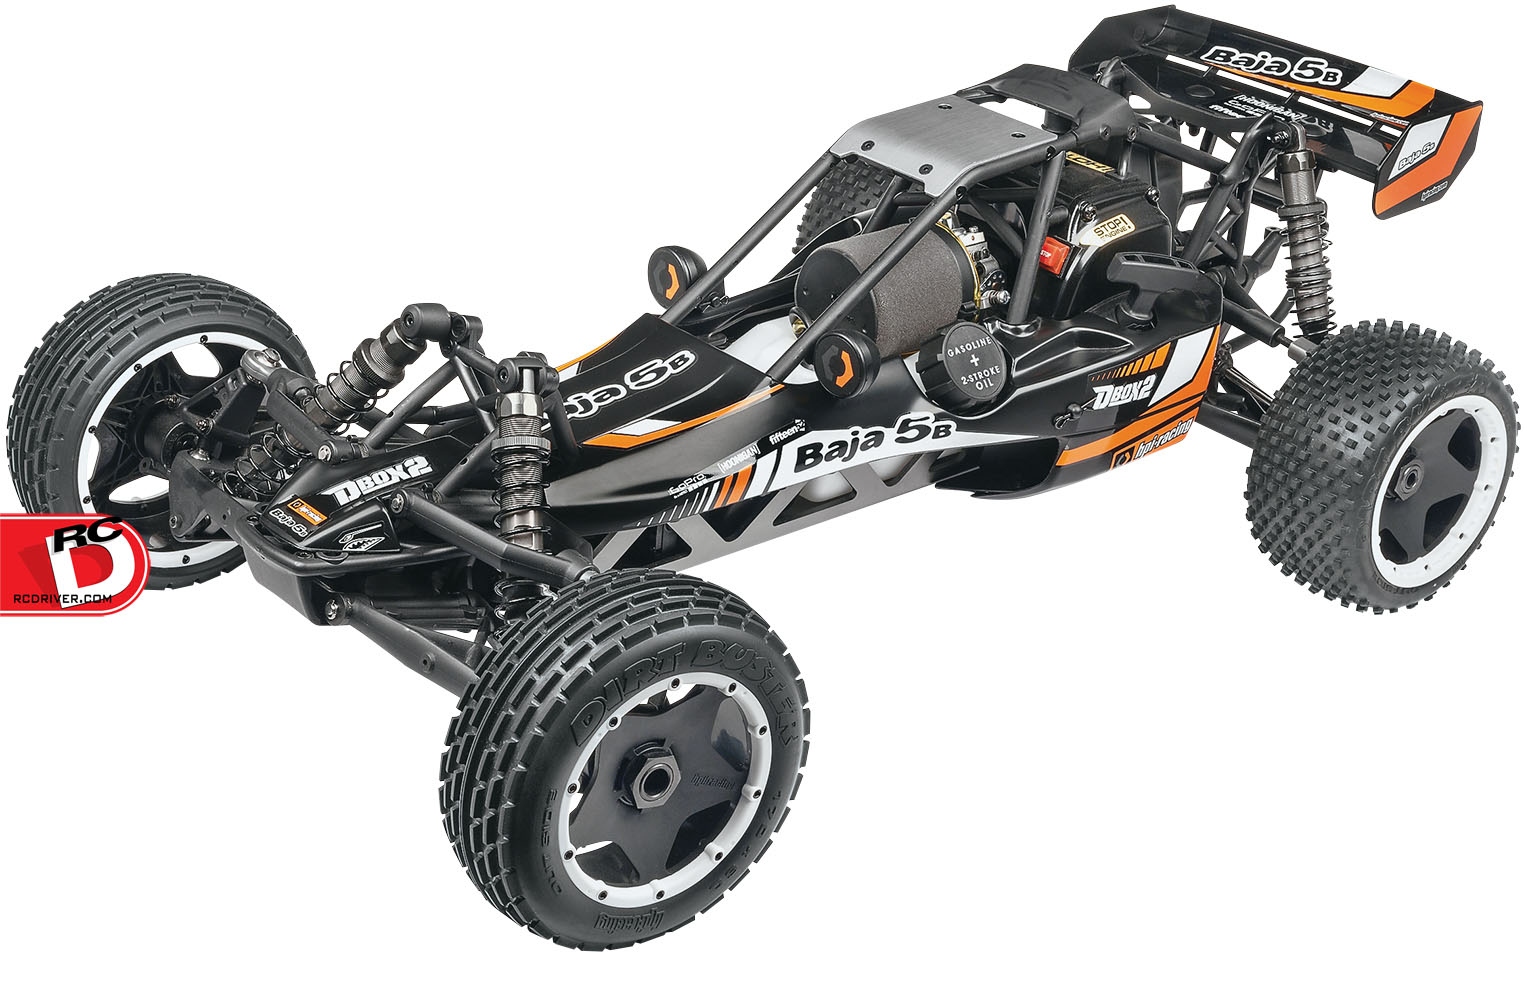 HPI Racing - BAJA 5B with D-Box 2 copy